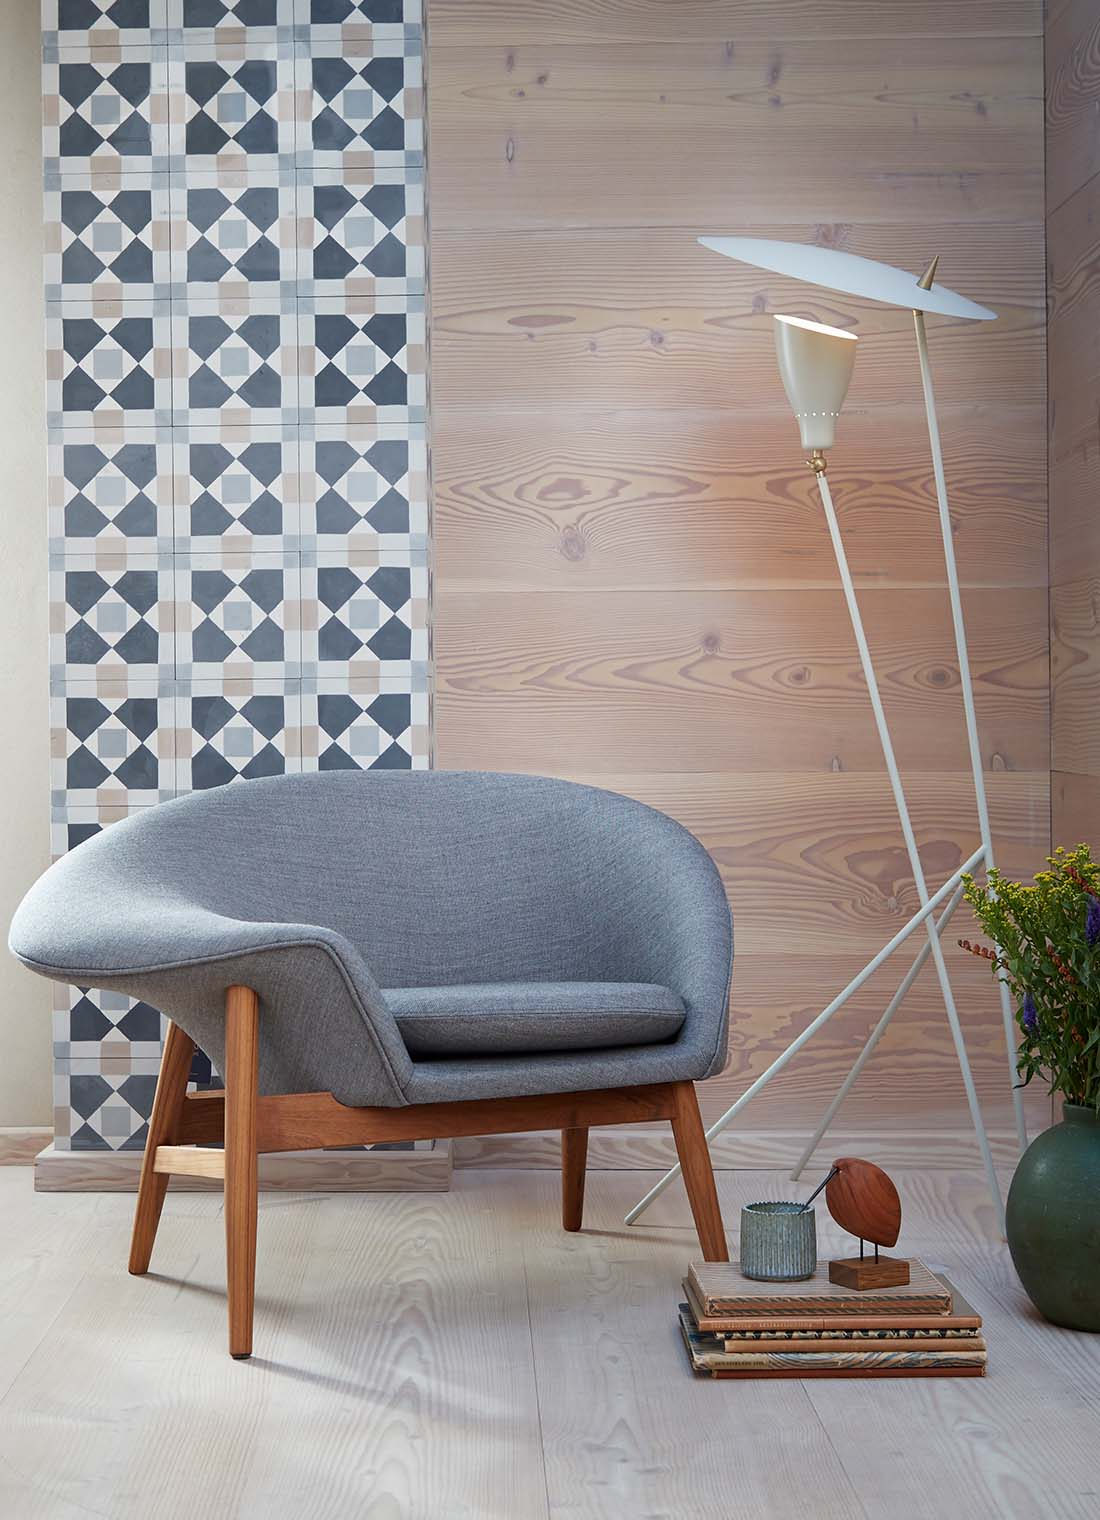 Silhouette floor lamp with fried egg lounge chair